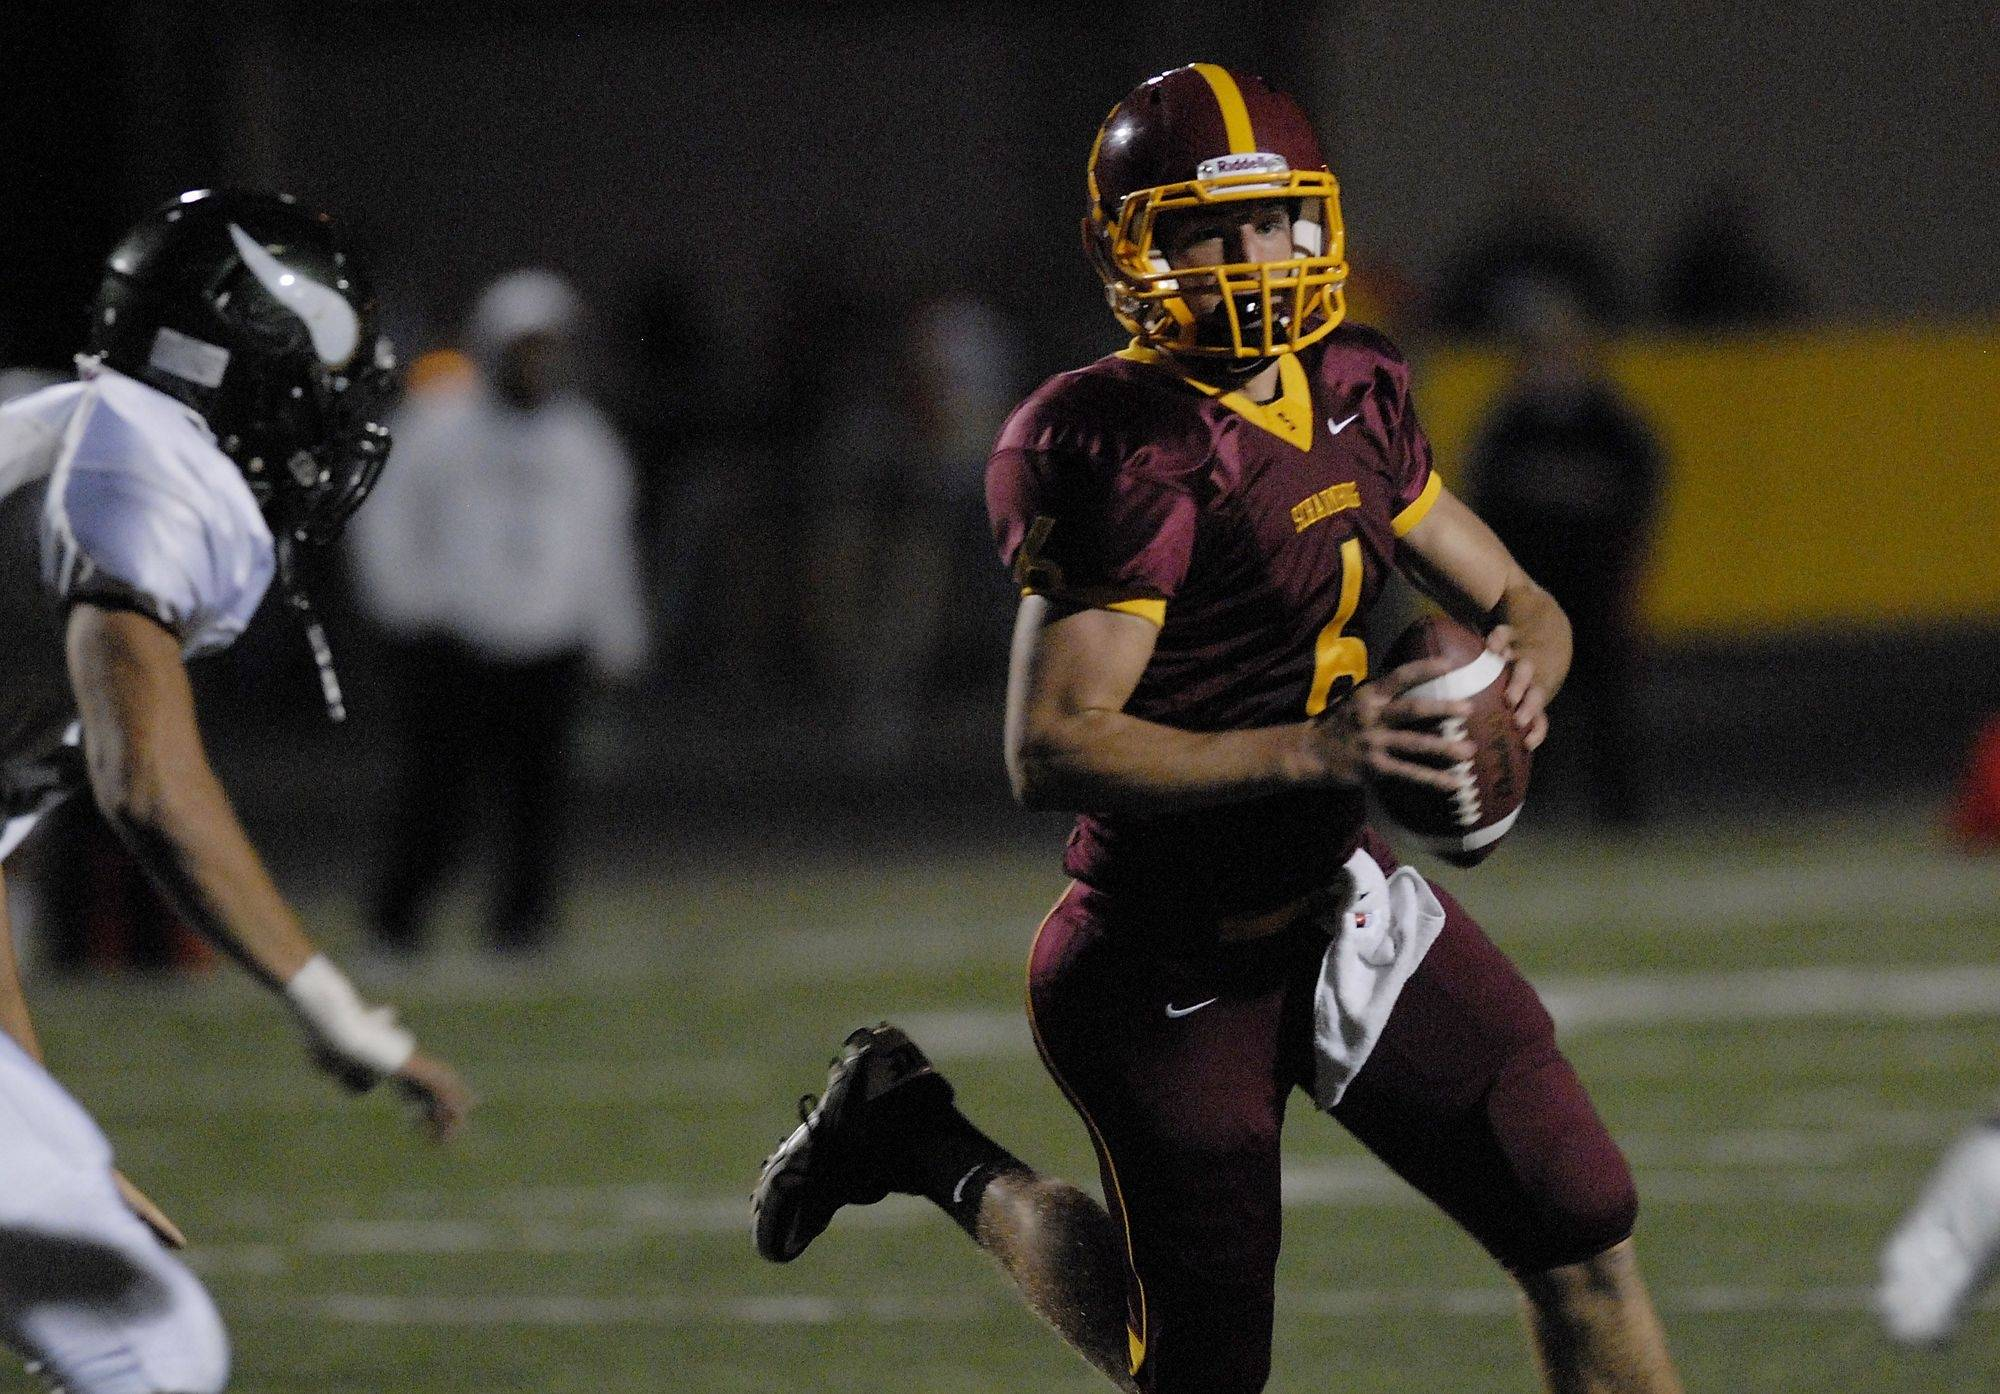 WEEK 5- Schaumburg's quarterback Mark Iannotti scrambles for a receiver but is hit by Fremd's Adam Mertes in the first quarter .